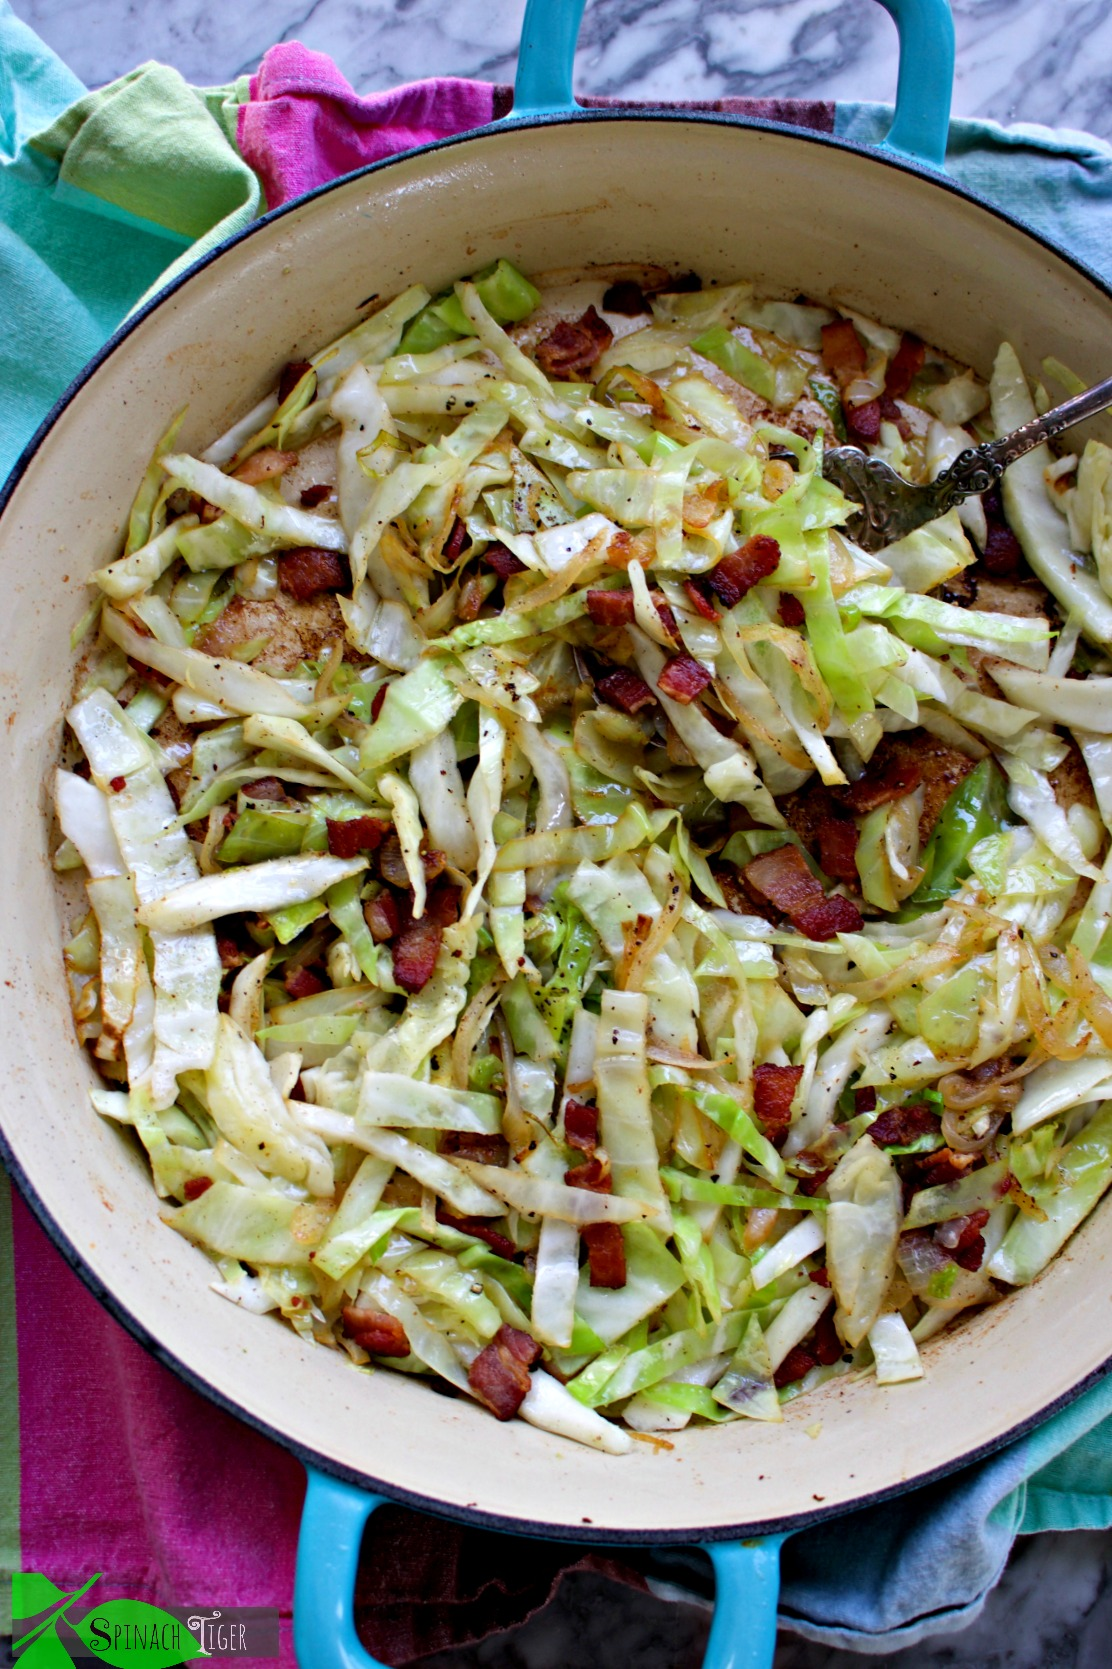 Sauteed cabbage with bacon, onion, dill, lemon zest from Spinach Tiger